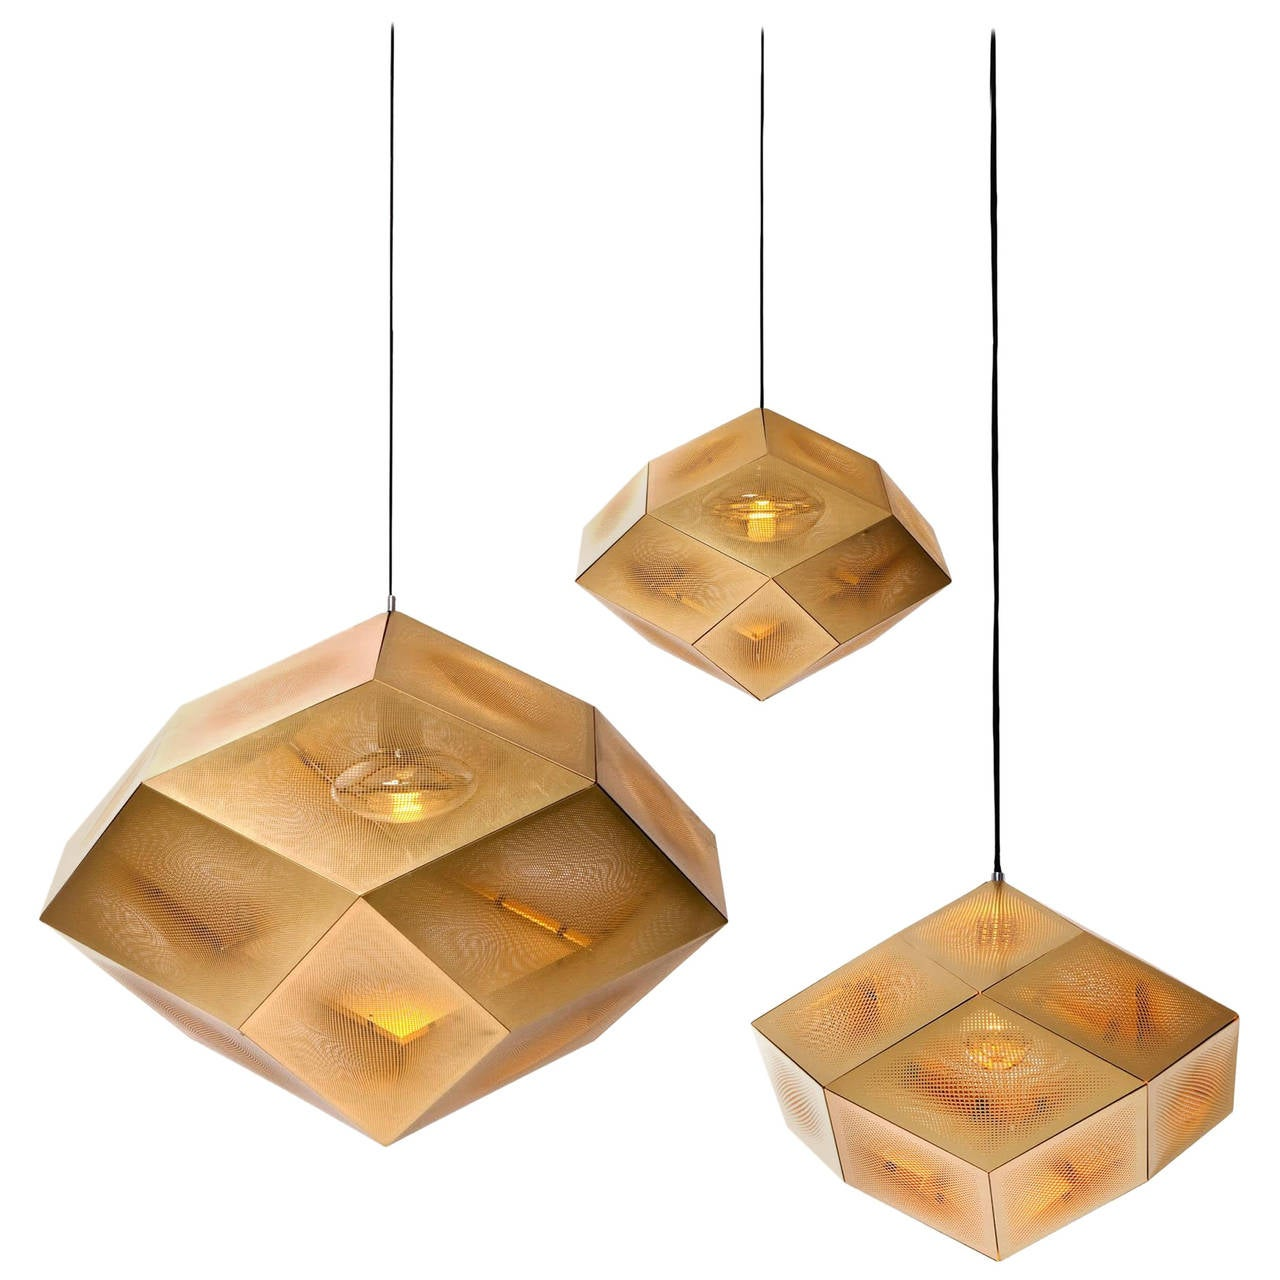 extremely rare etch pendants by tom dixon for sale at 1stdibs. Black Bedroom Furniture Sets. Home Design Ideas